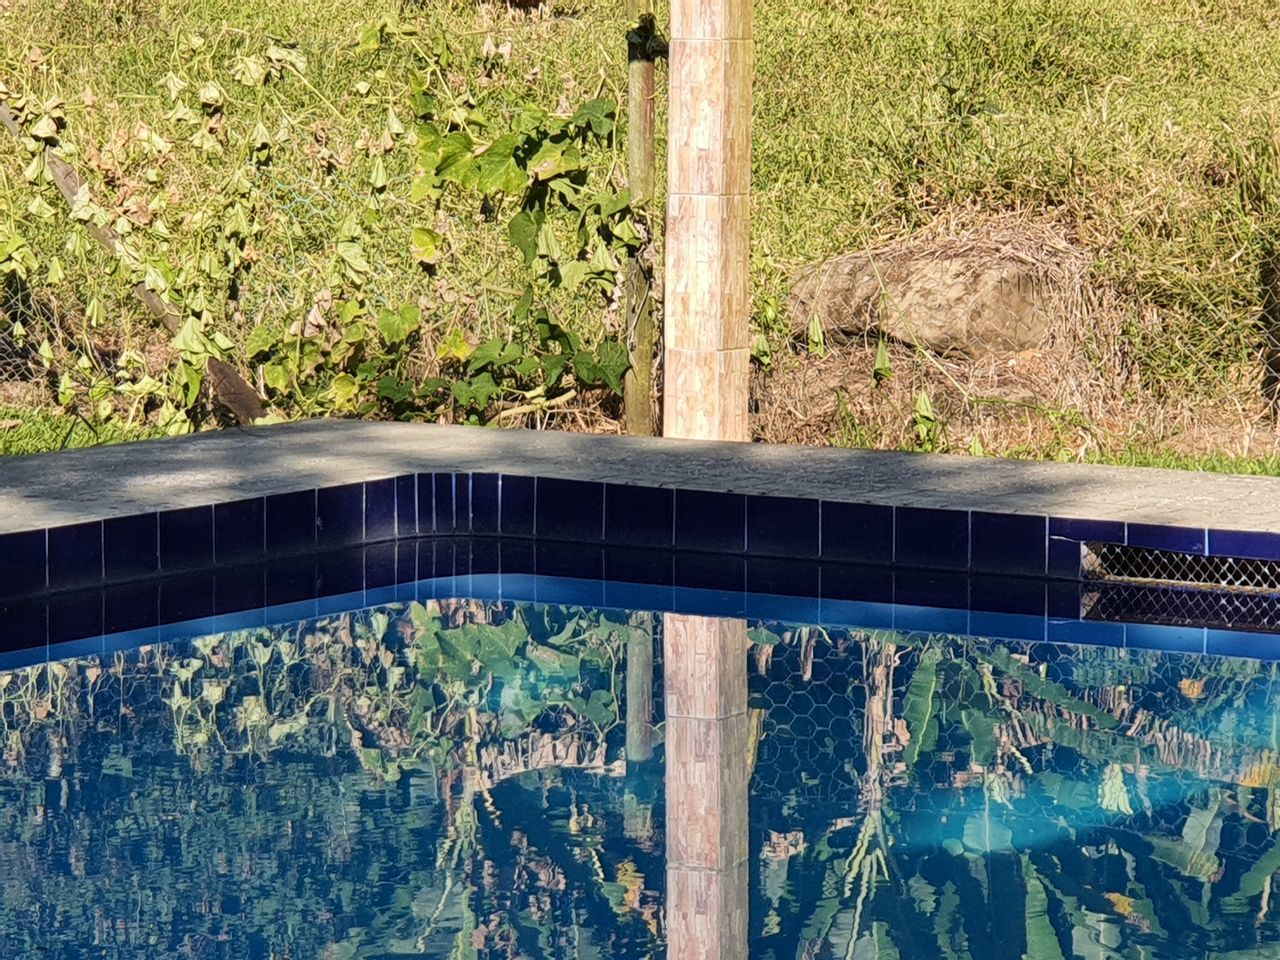 HIGH ANGLE VIEW OF SWIMMING POOL BY TREE